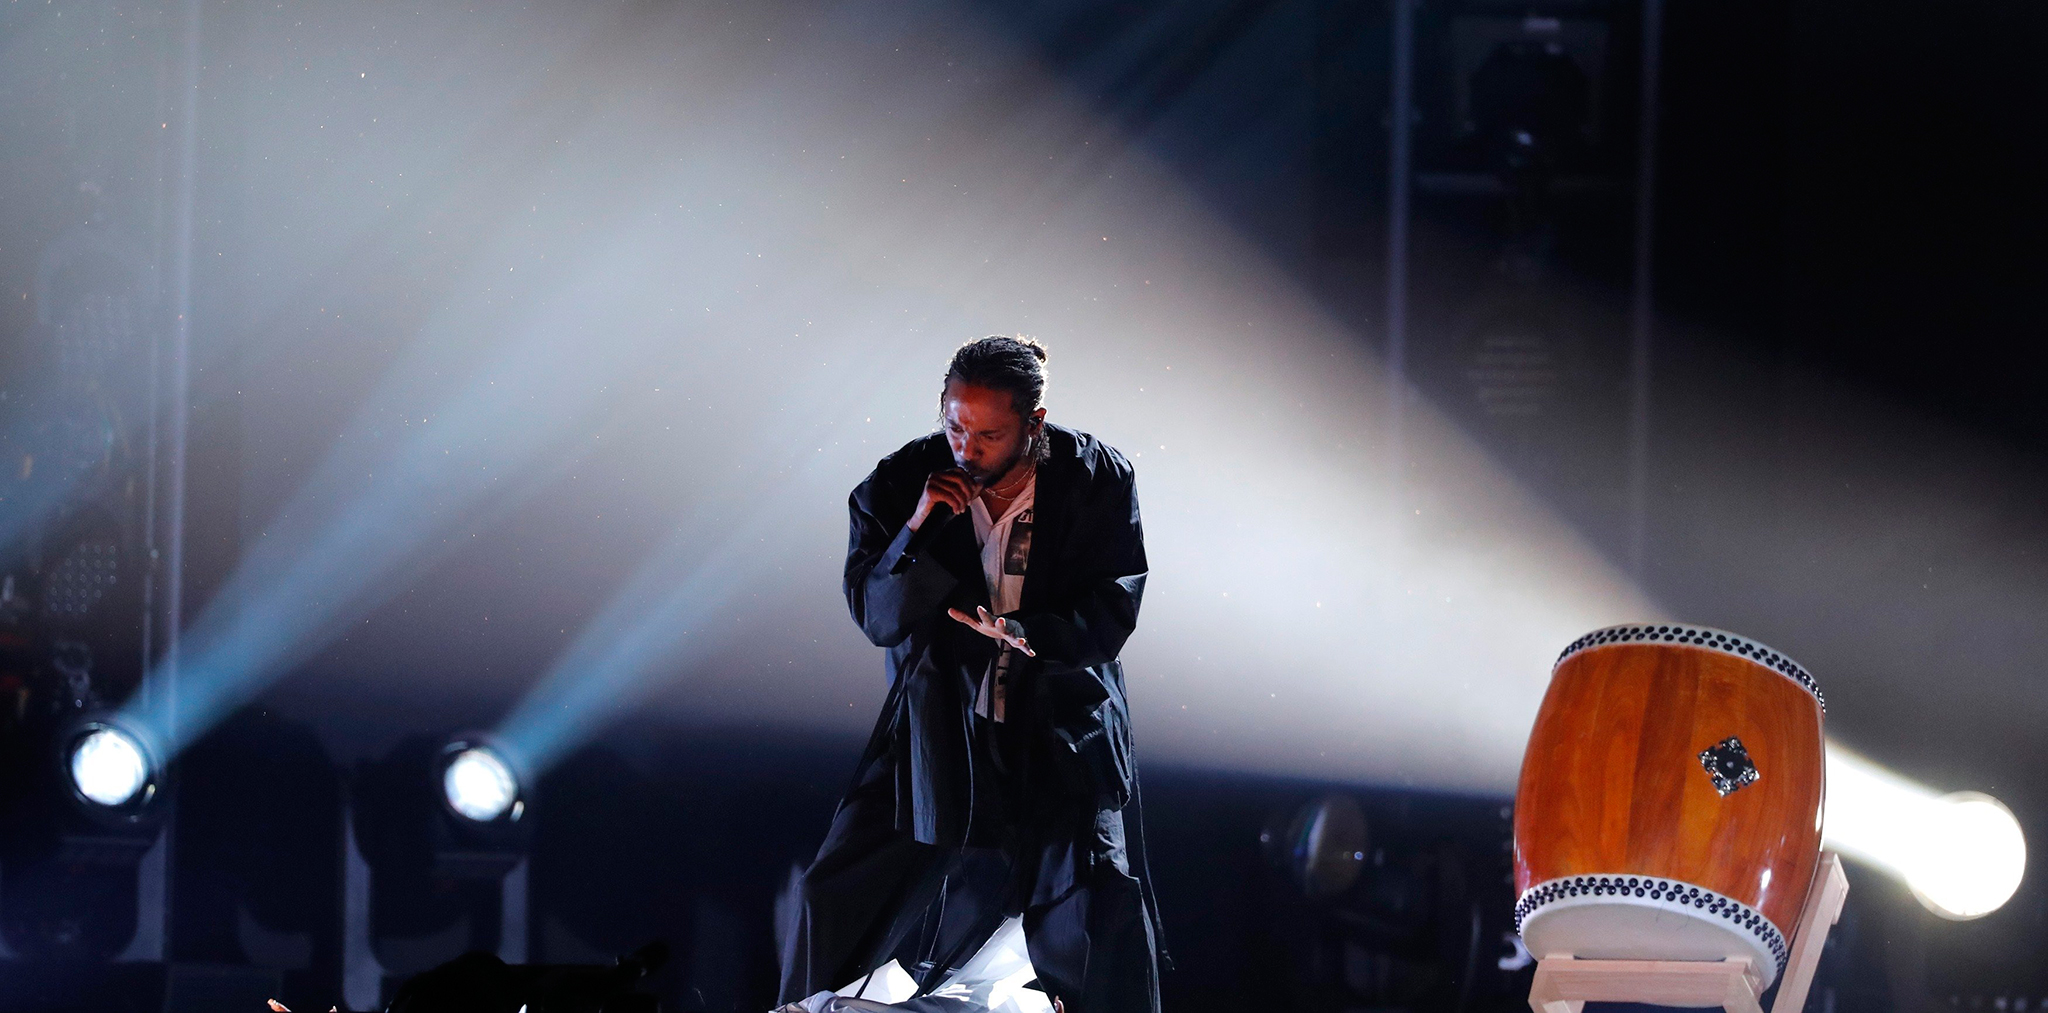 Kendrick Lamar performs during the 60th Annual Grammy Awards in New York on Jan. 28, 2018. Lucas Jackson—Reuters